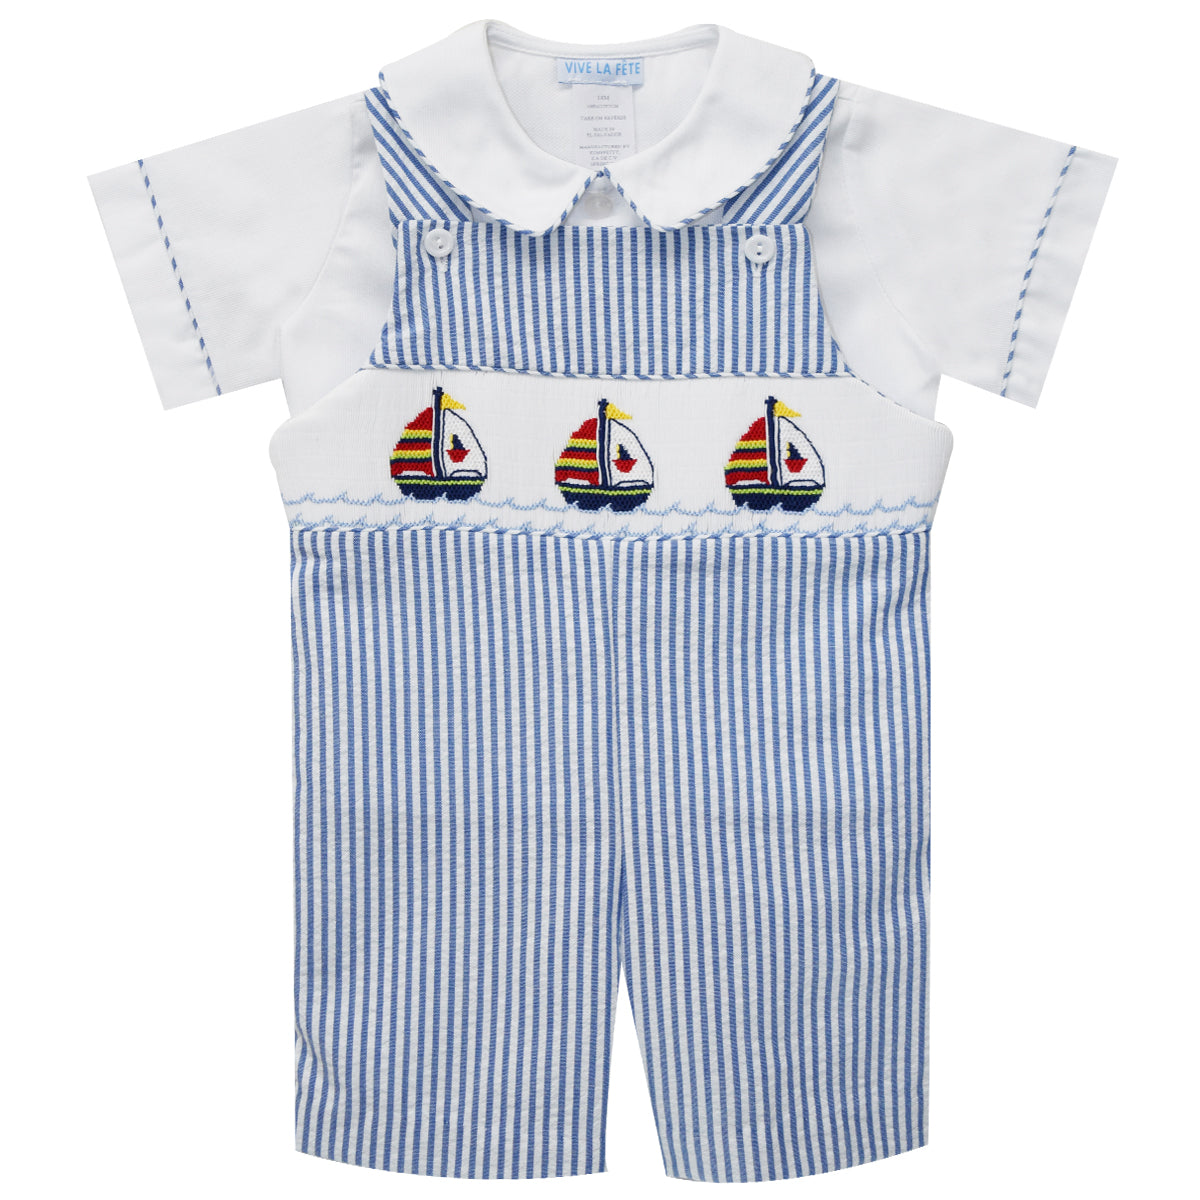 Hand Smocked Sailboat Shortall - Vive La Fête - Online Apparel Store